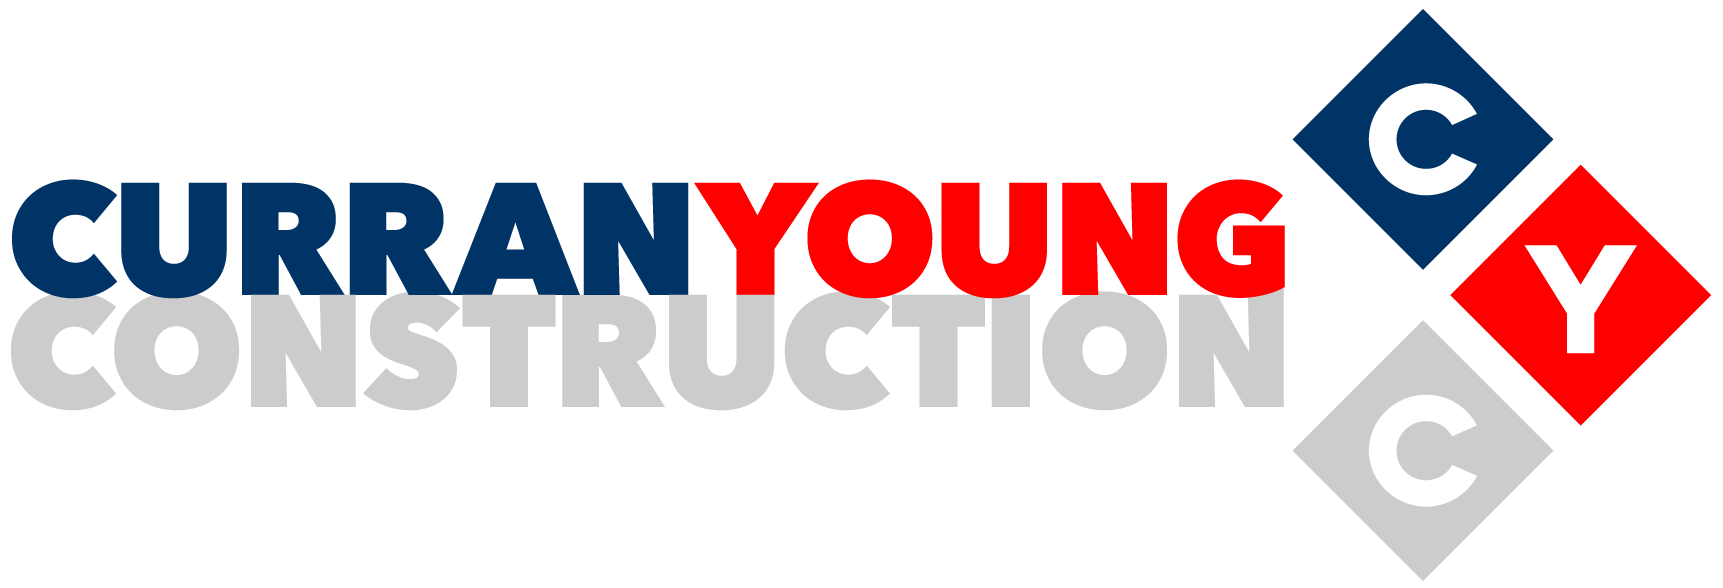 Curran Young Construction